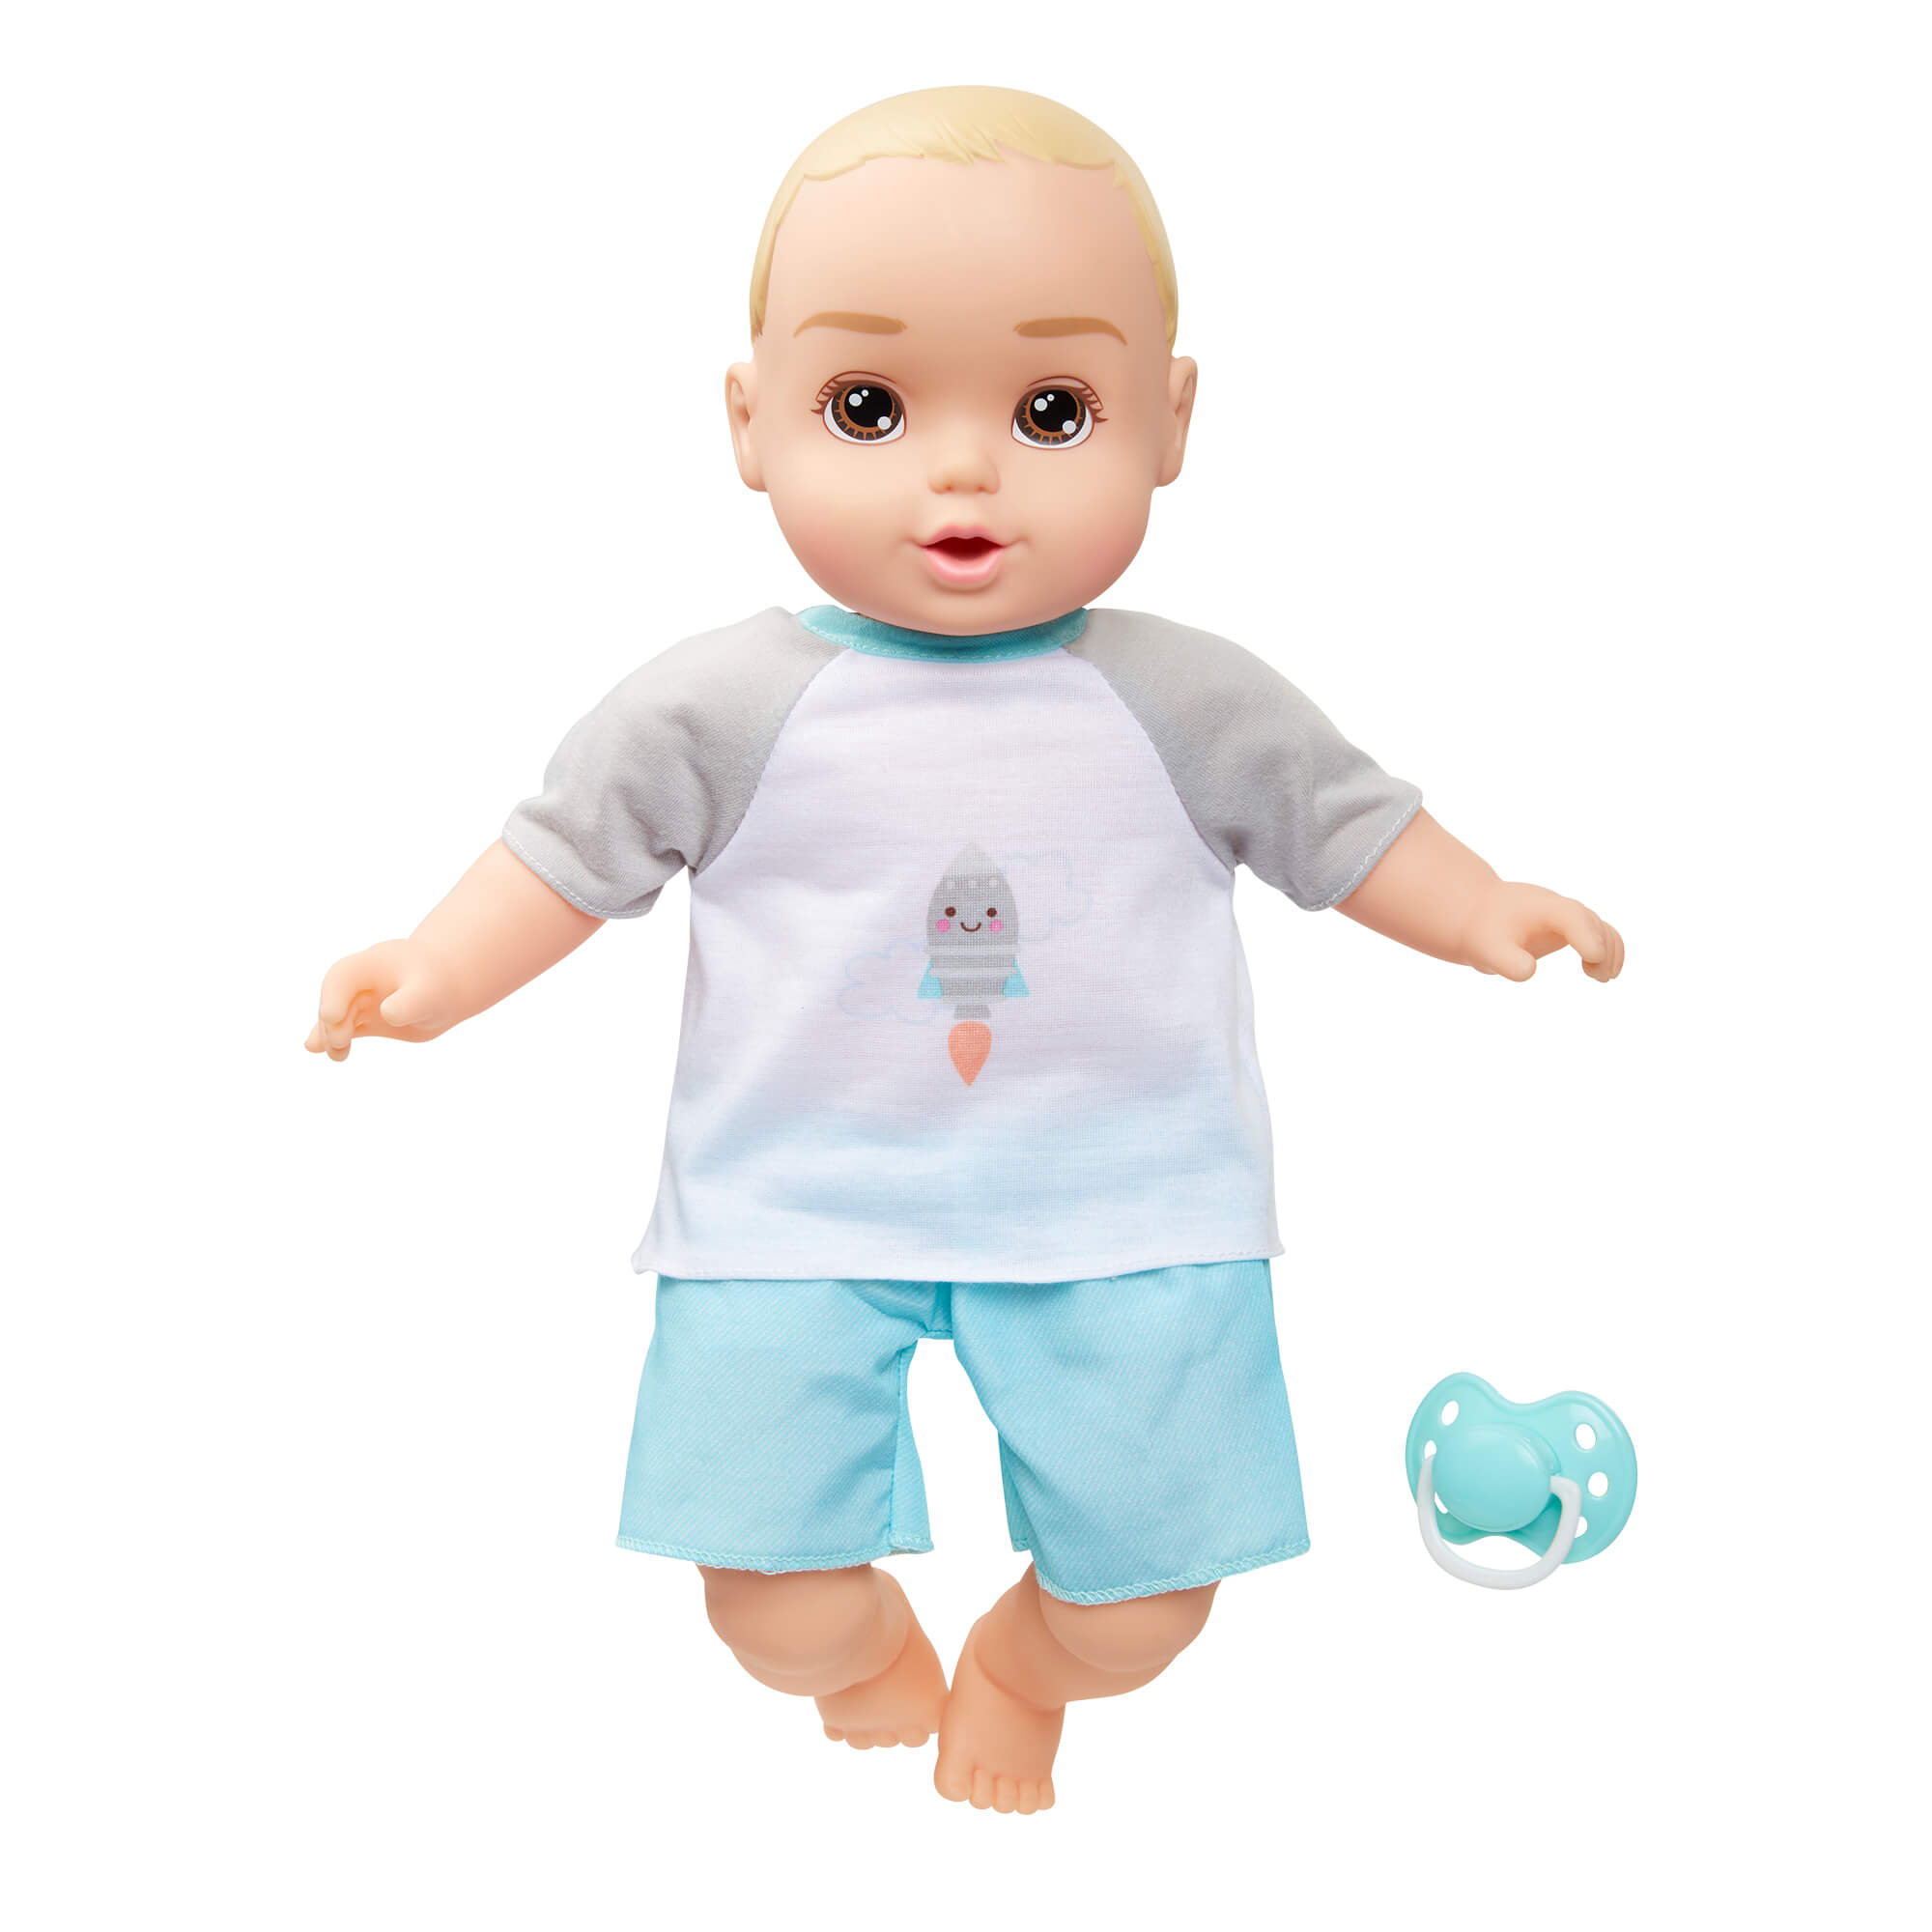 Perfectly Cute Baby 14 inch My Sweet Baby Boy Doll (Blonde)